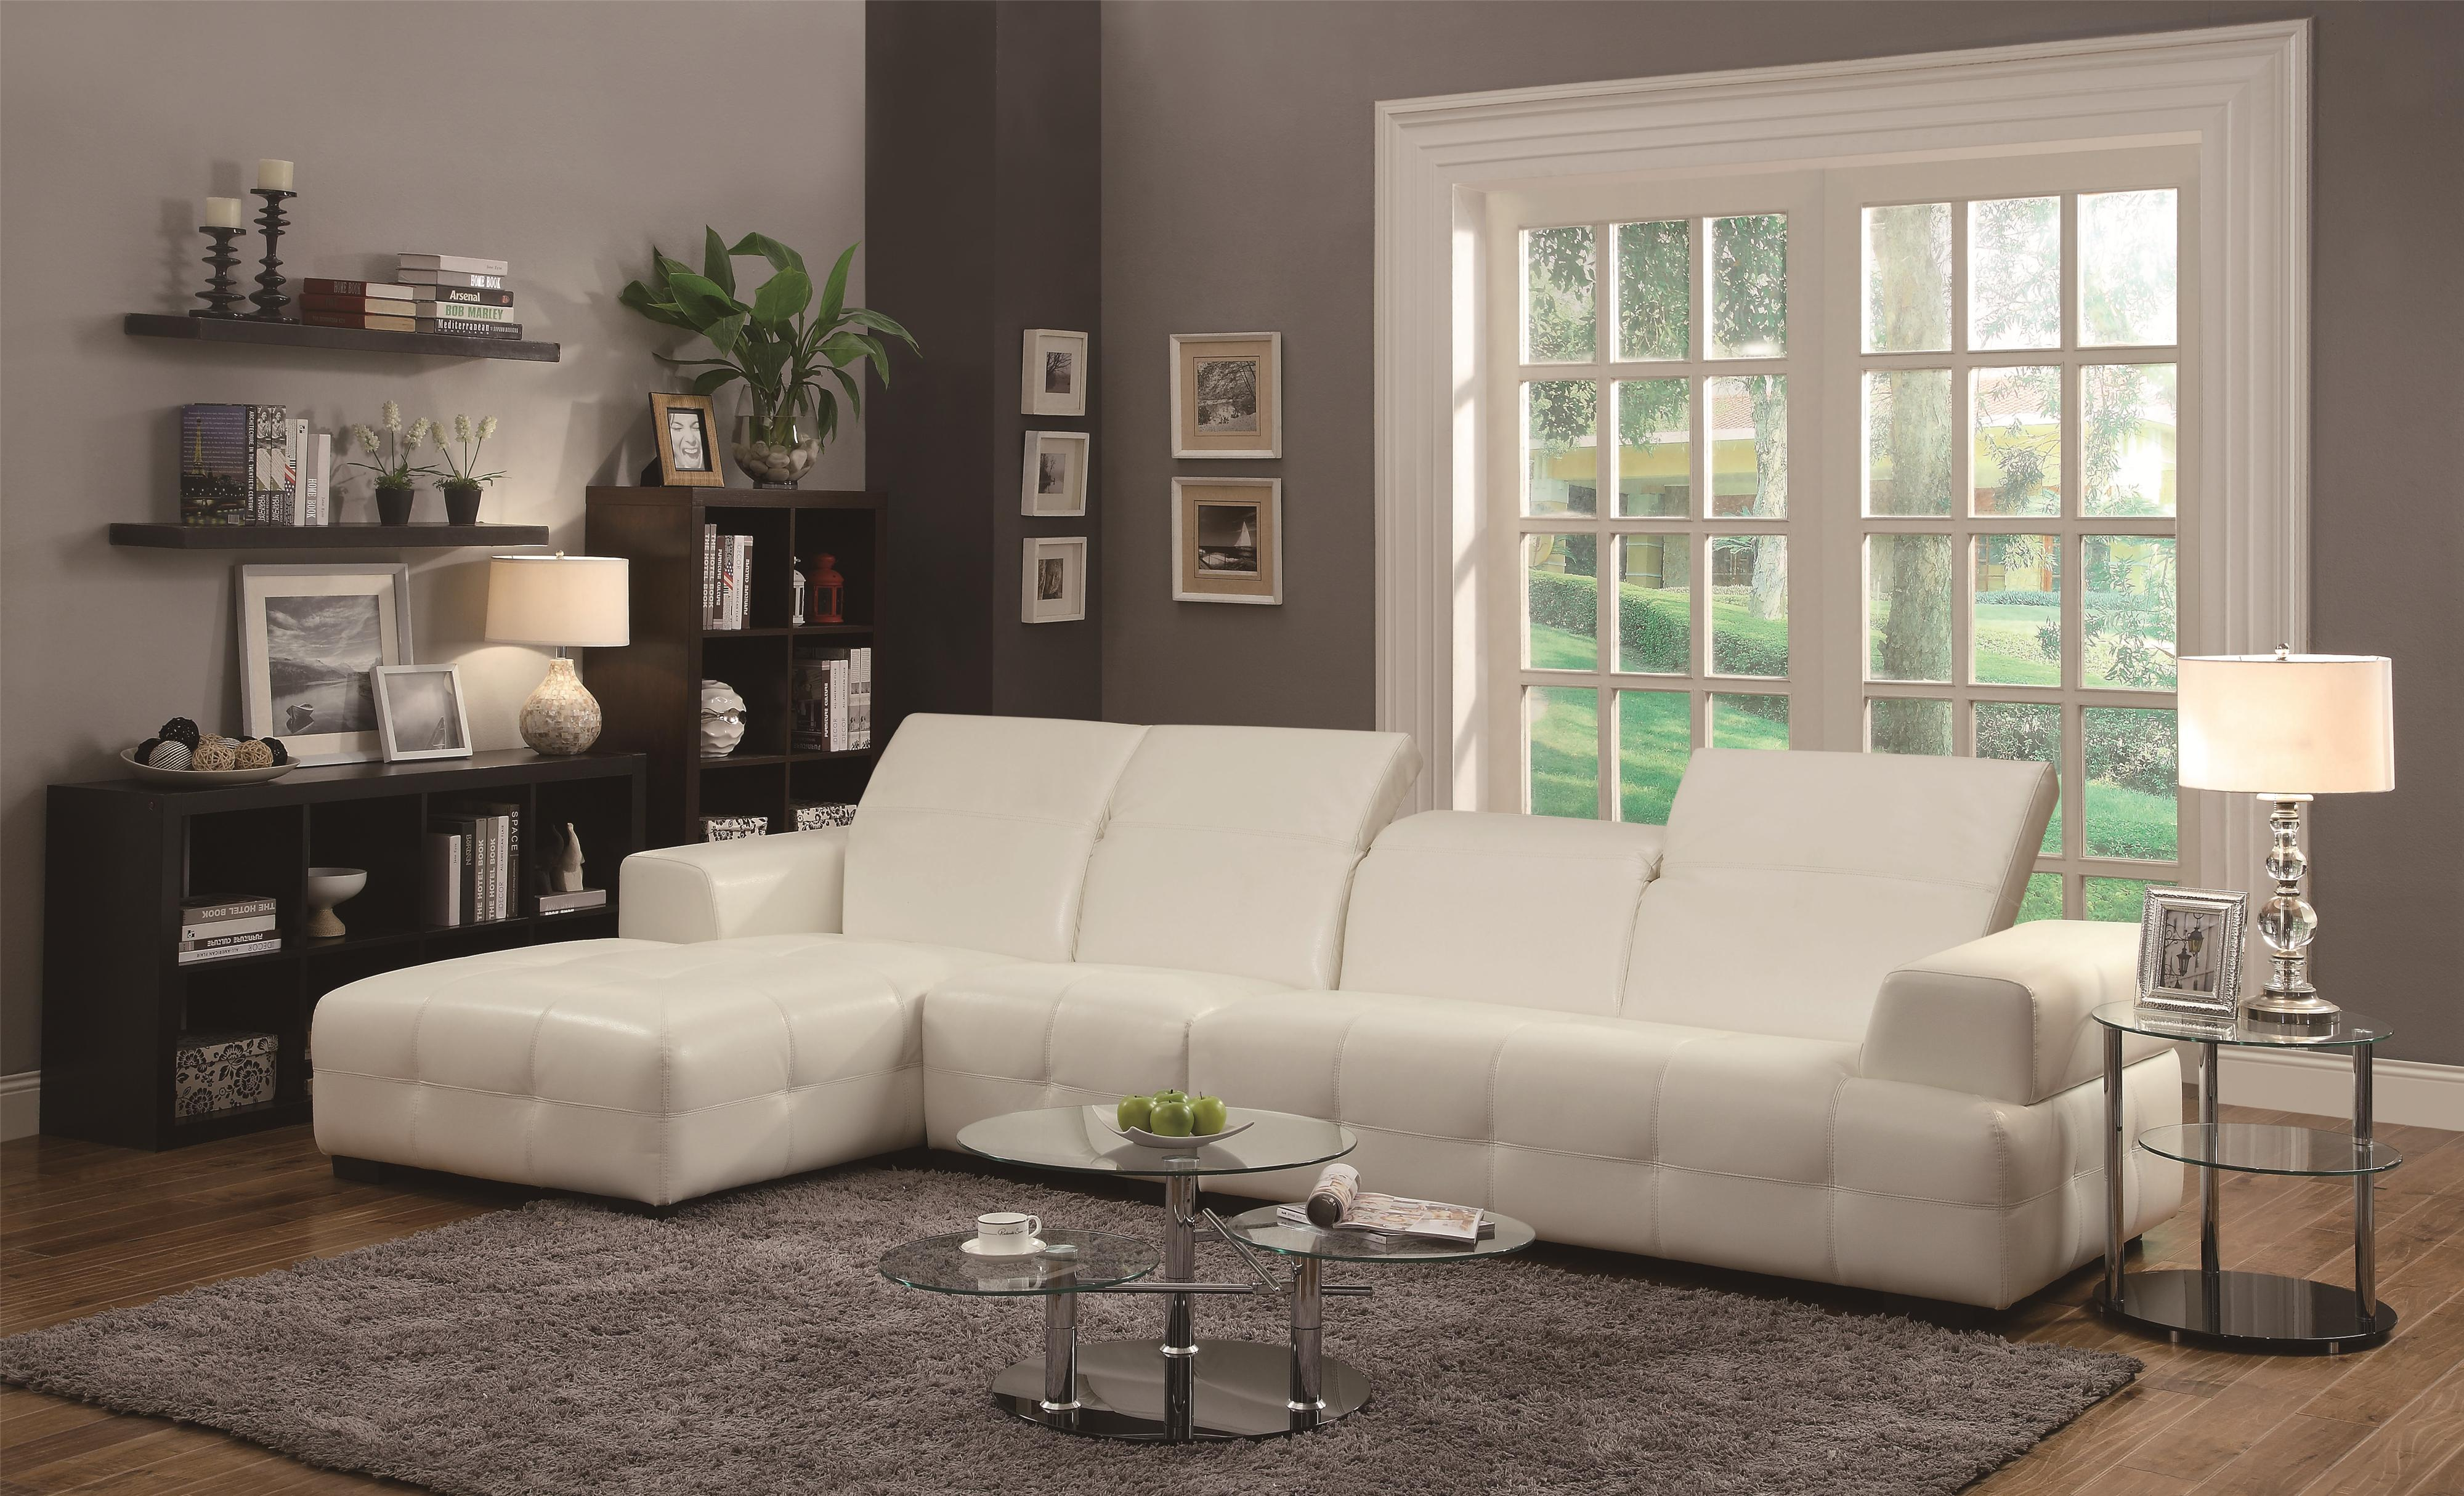 Coaster Darby Contemporary Sectional Sofa With Wide Arms   Coaster Fine  Furniture